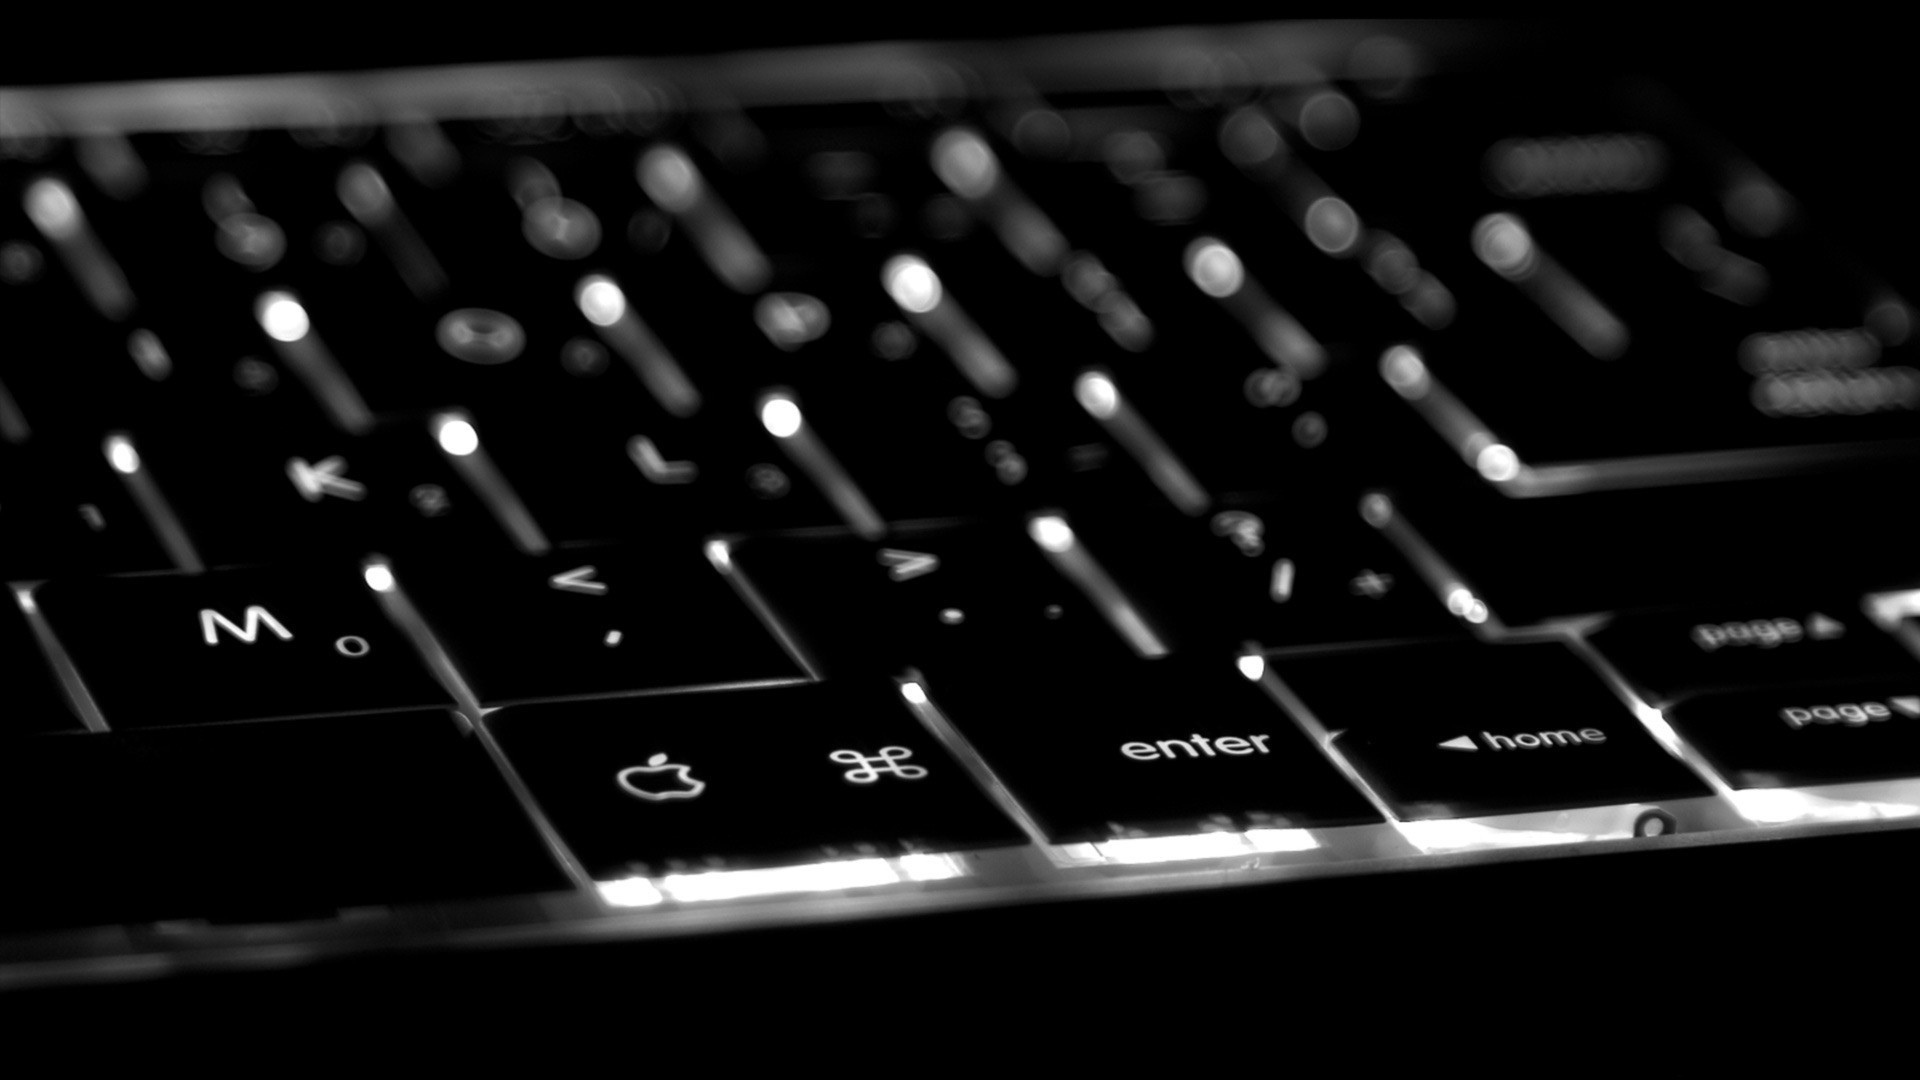 Wallpaper 3840X2160 Keyboard Apple